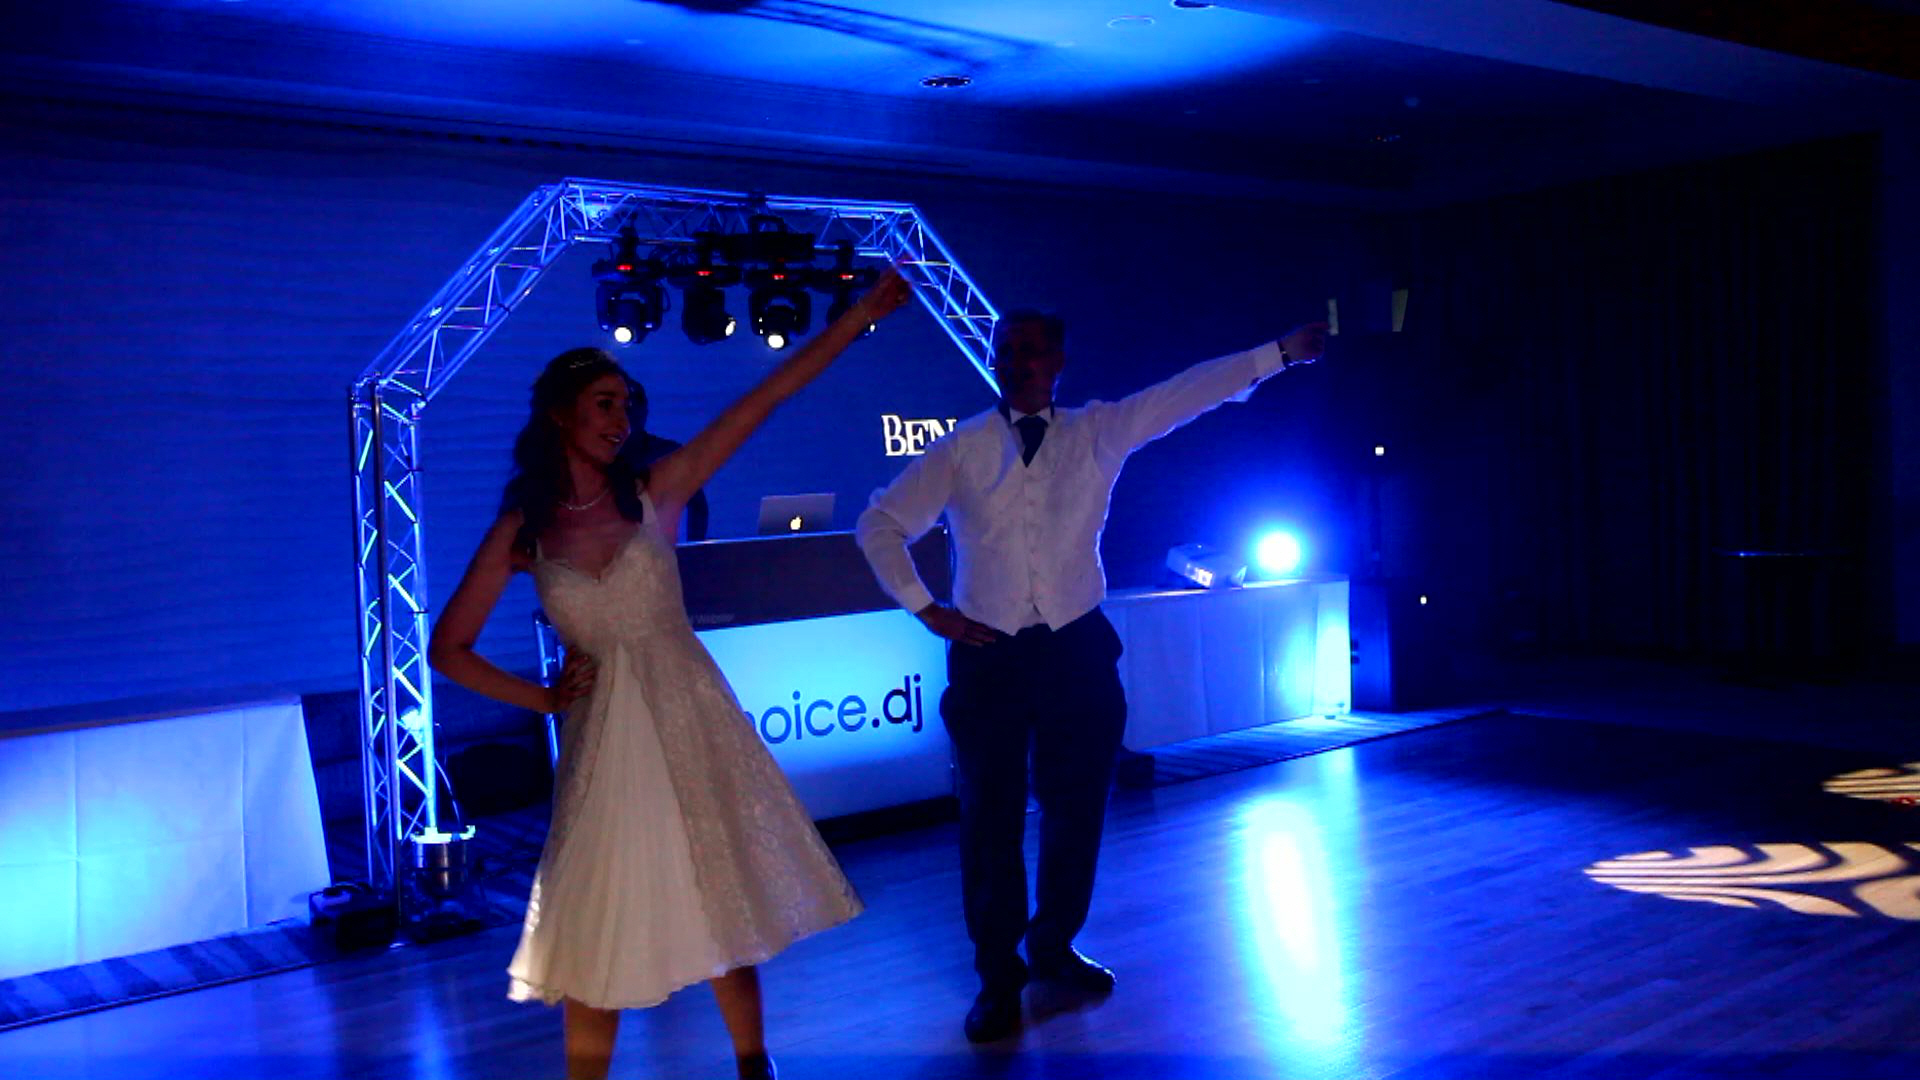 Video: Surprise Father/Daughter Dance @ Jo & Bens Wedding – 11/5/2013